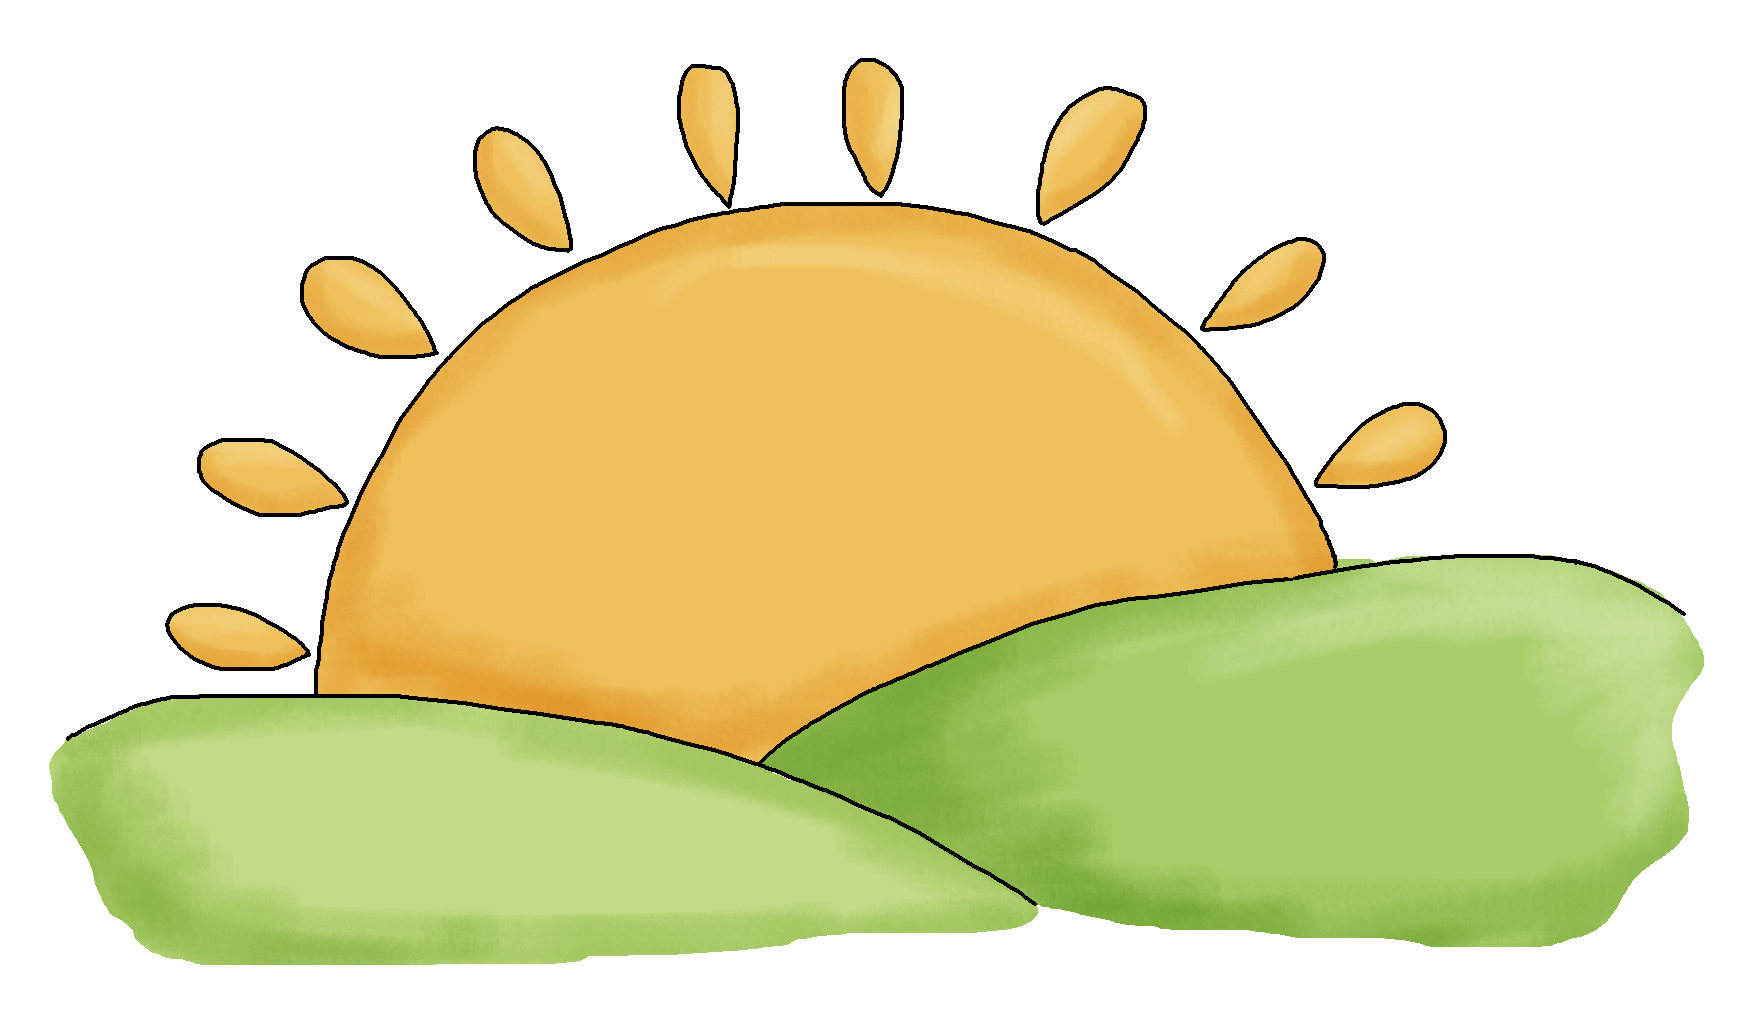 Free sunrise download best. Paws clipart artistic